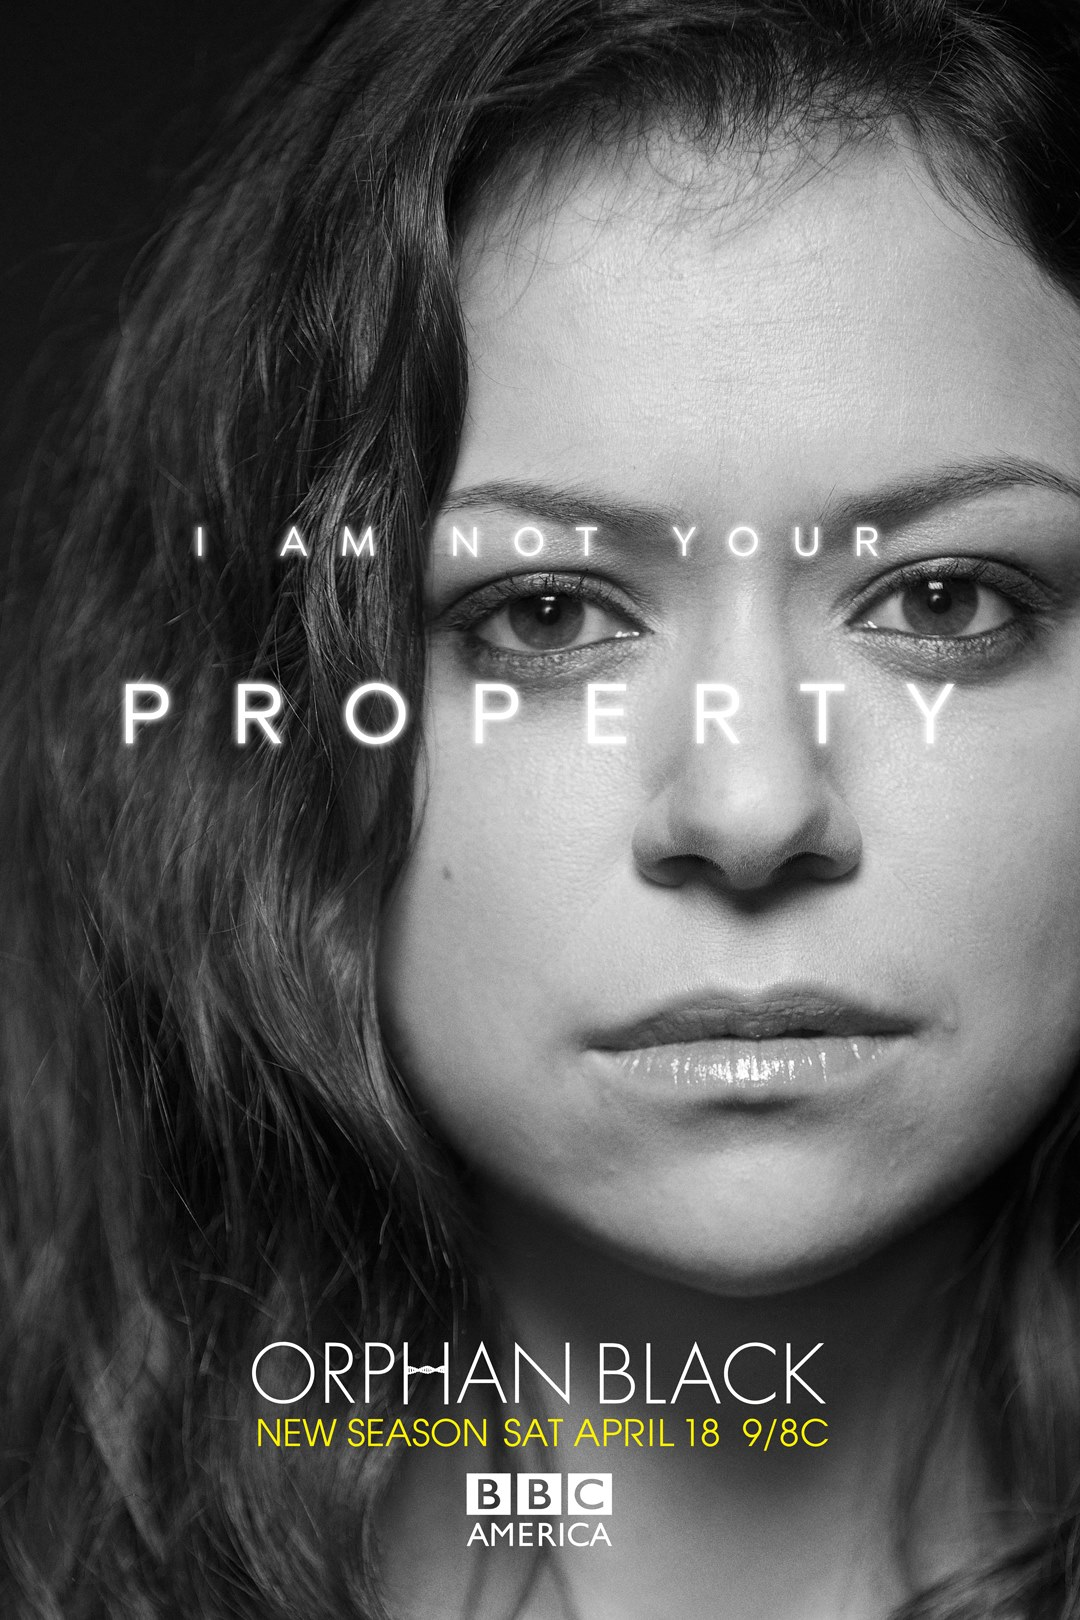 New ORPHAN BLACK Season 3 Trailers, Clip and Character ... |Orphan Black Season 3 Poster